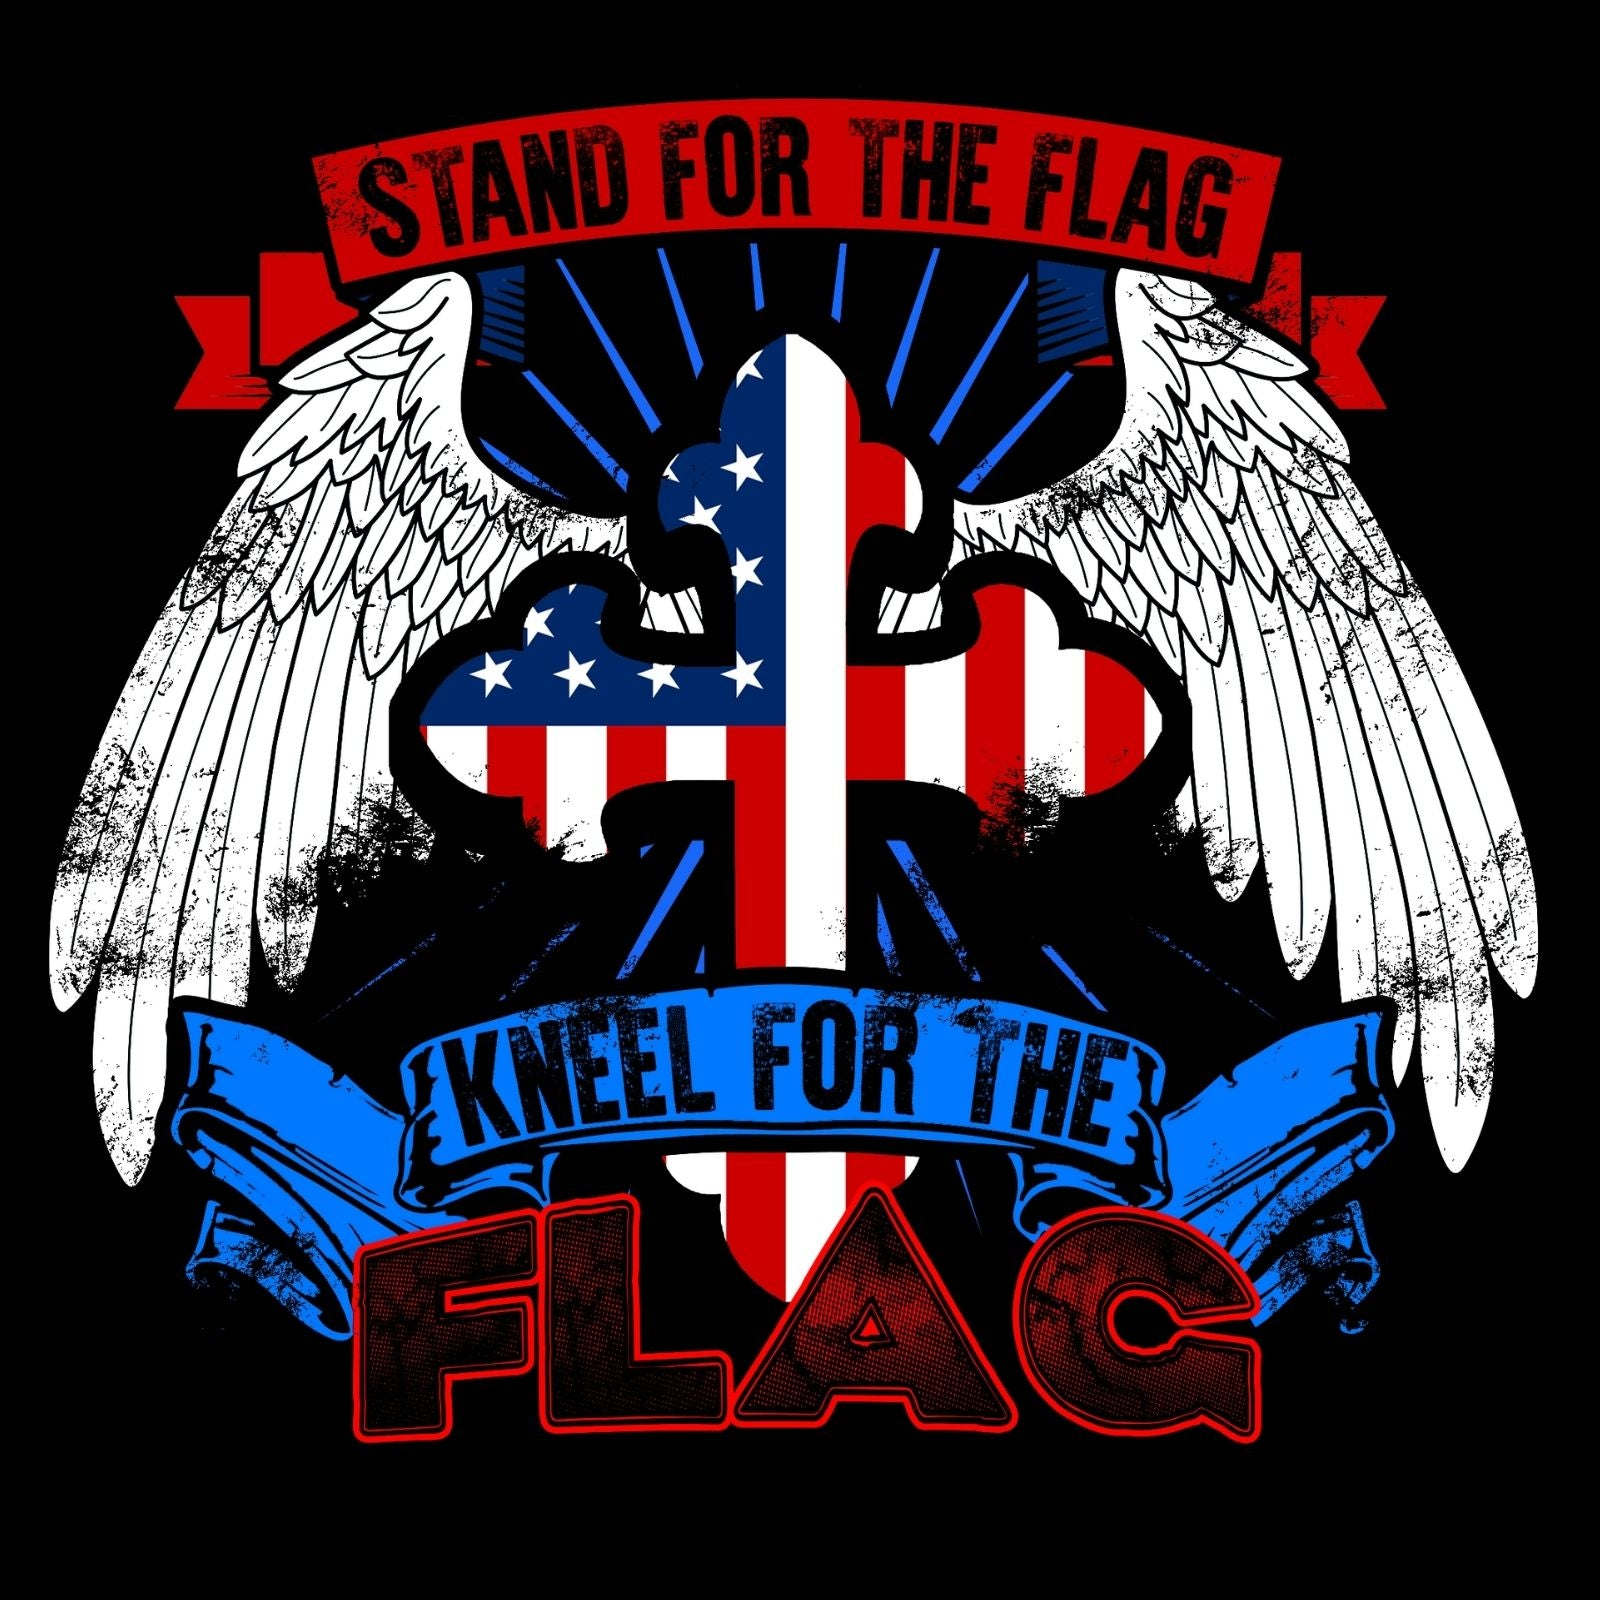 Stand For The Flag Kneel For The Flag - Bastard Graphics